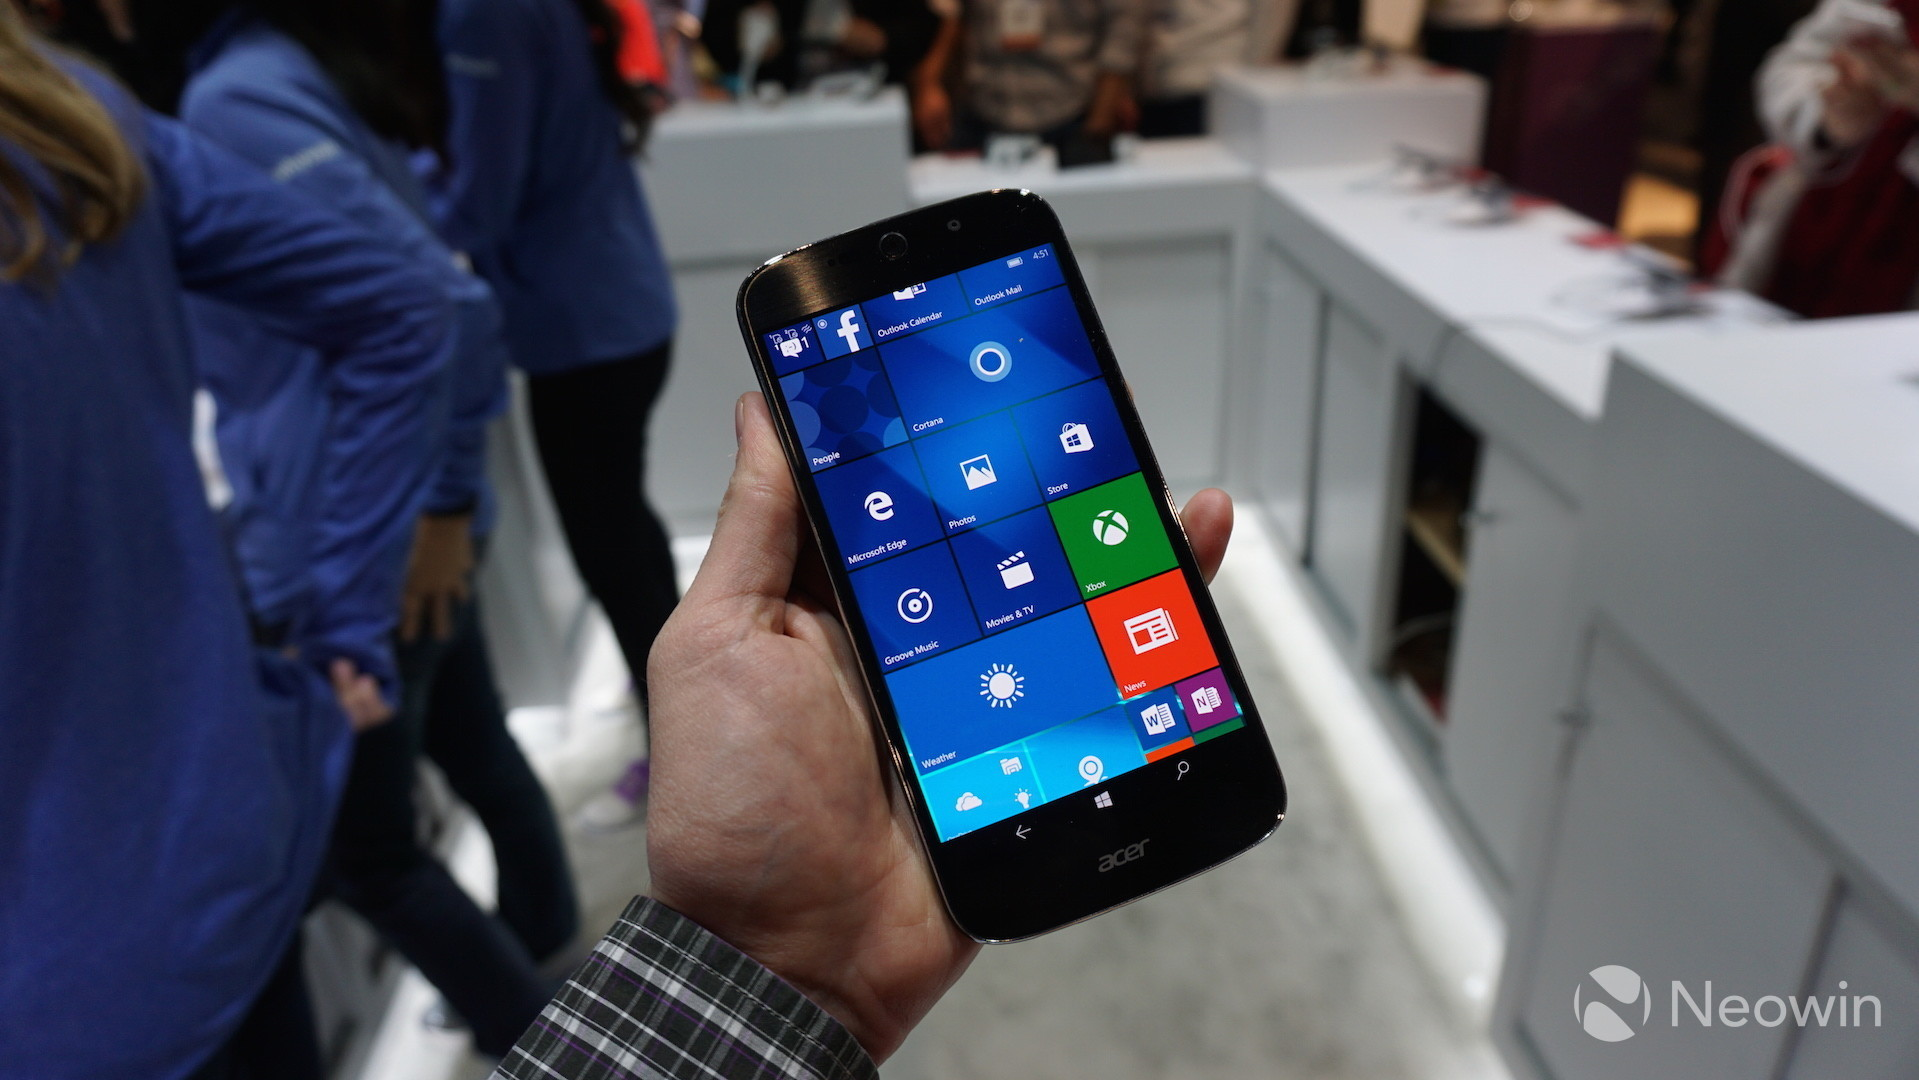 Building 92 microsoft store - It S Been Just Over Two Weeks Since Microsoft Removed Half Of All Windows Phone Listings From Its Online Store Leaving Only Seven